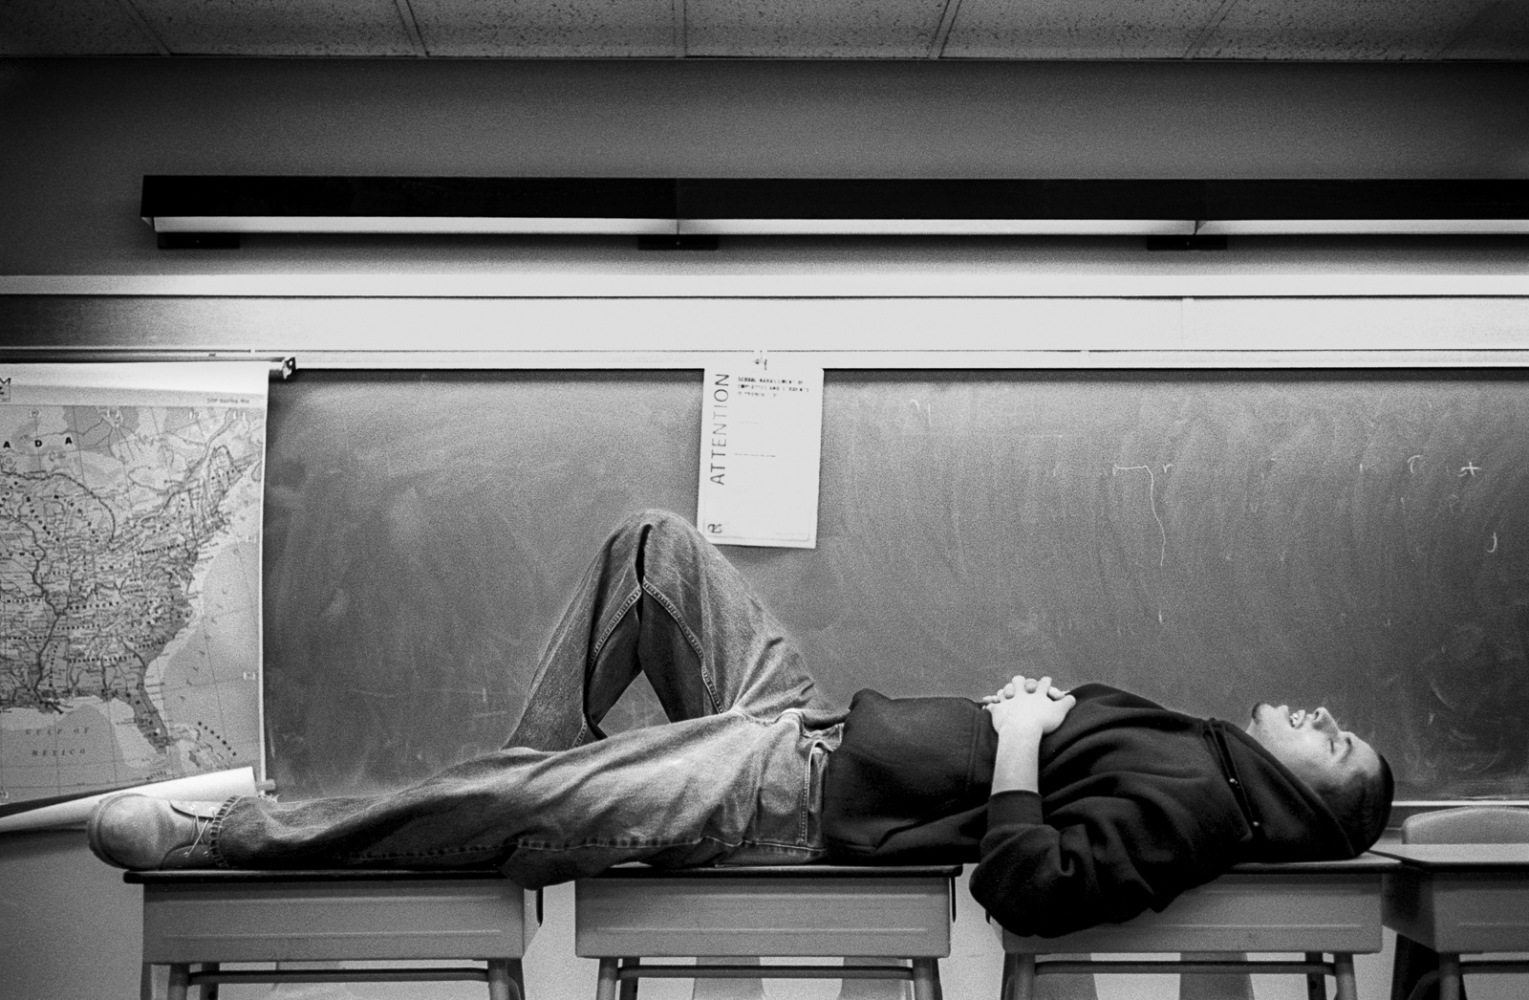 Jesus chills between classes. Second Chance doesn't have it's own building and holds class in Cesar Chavez Elementary School after the young kids are done for the day.